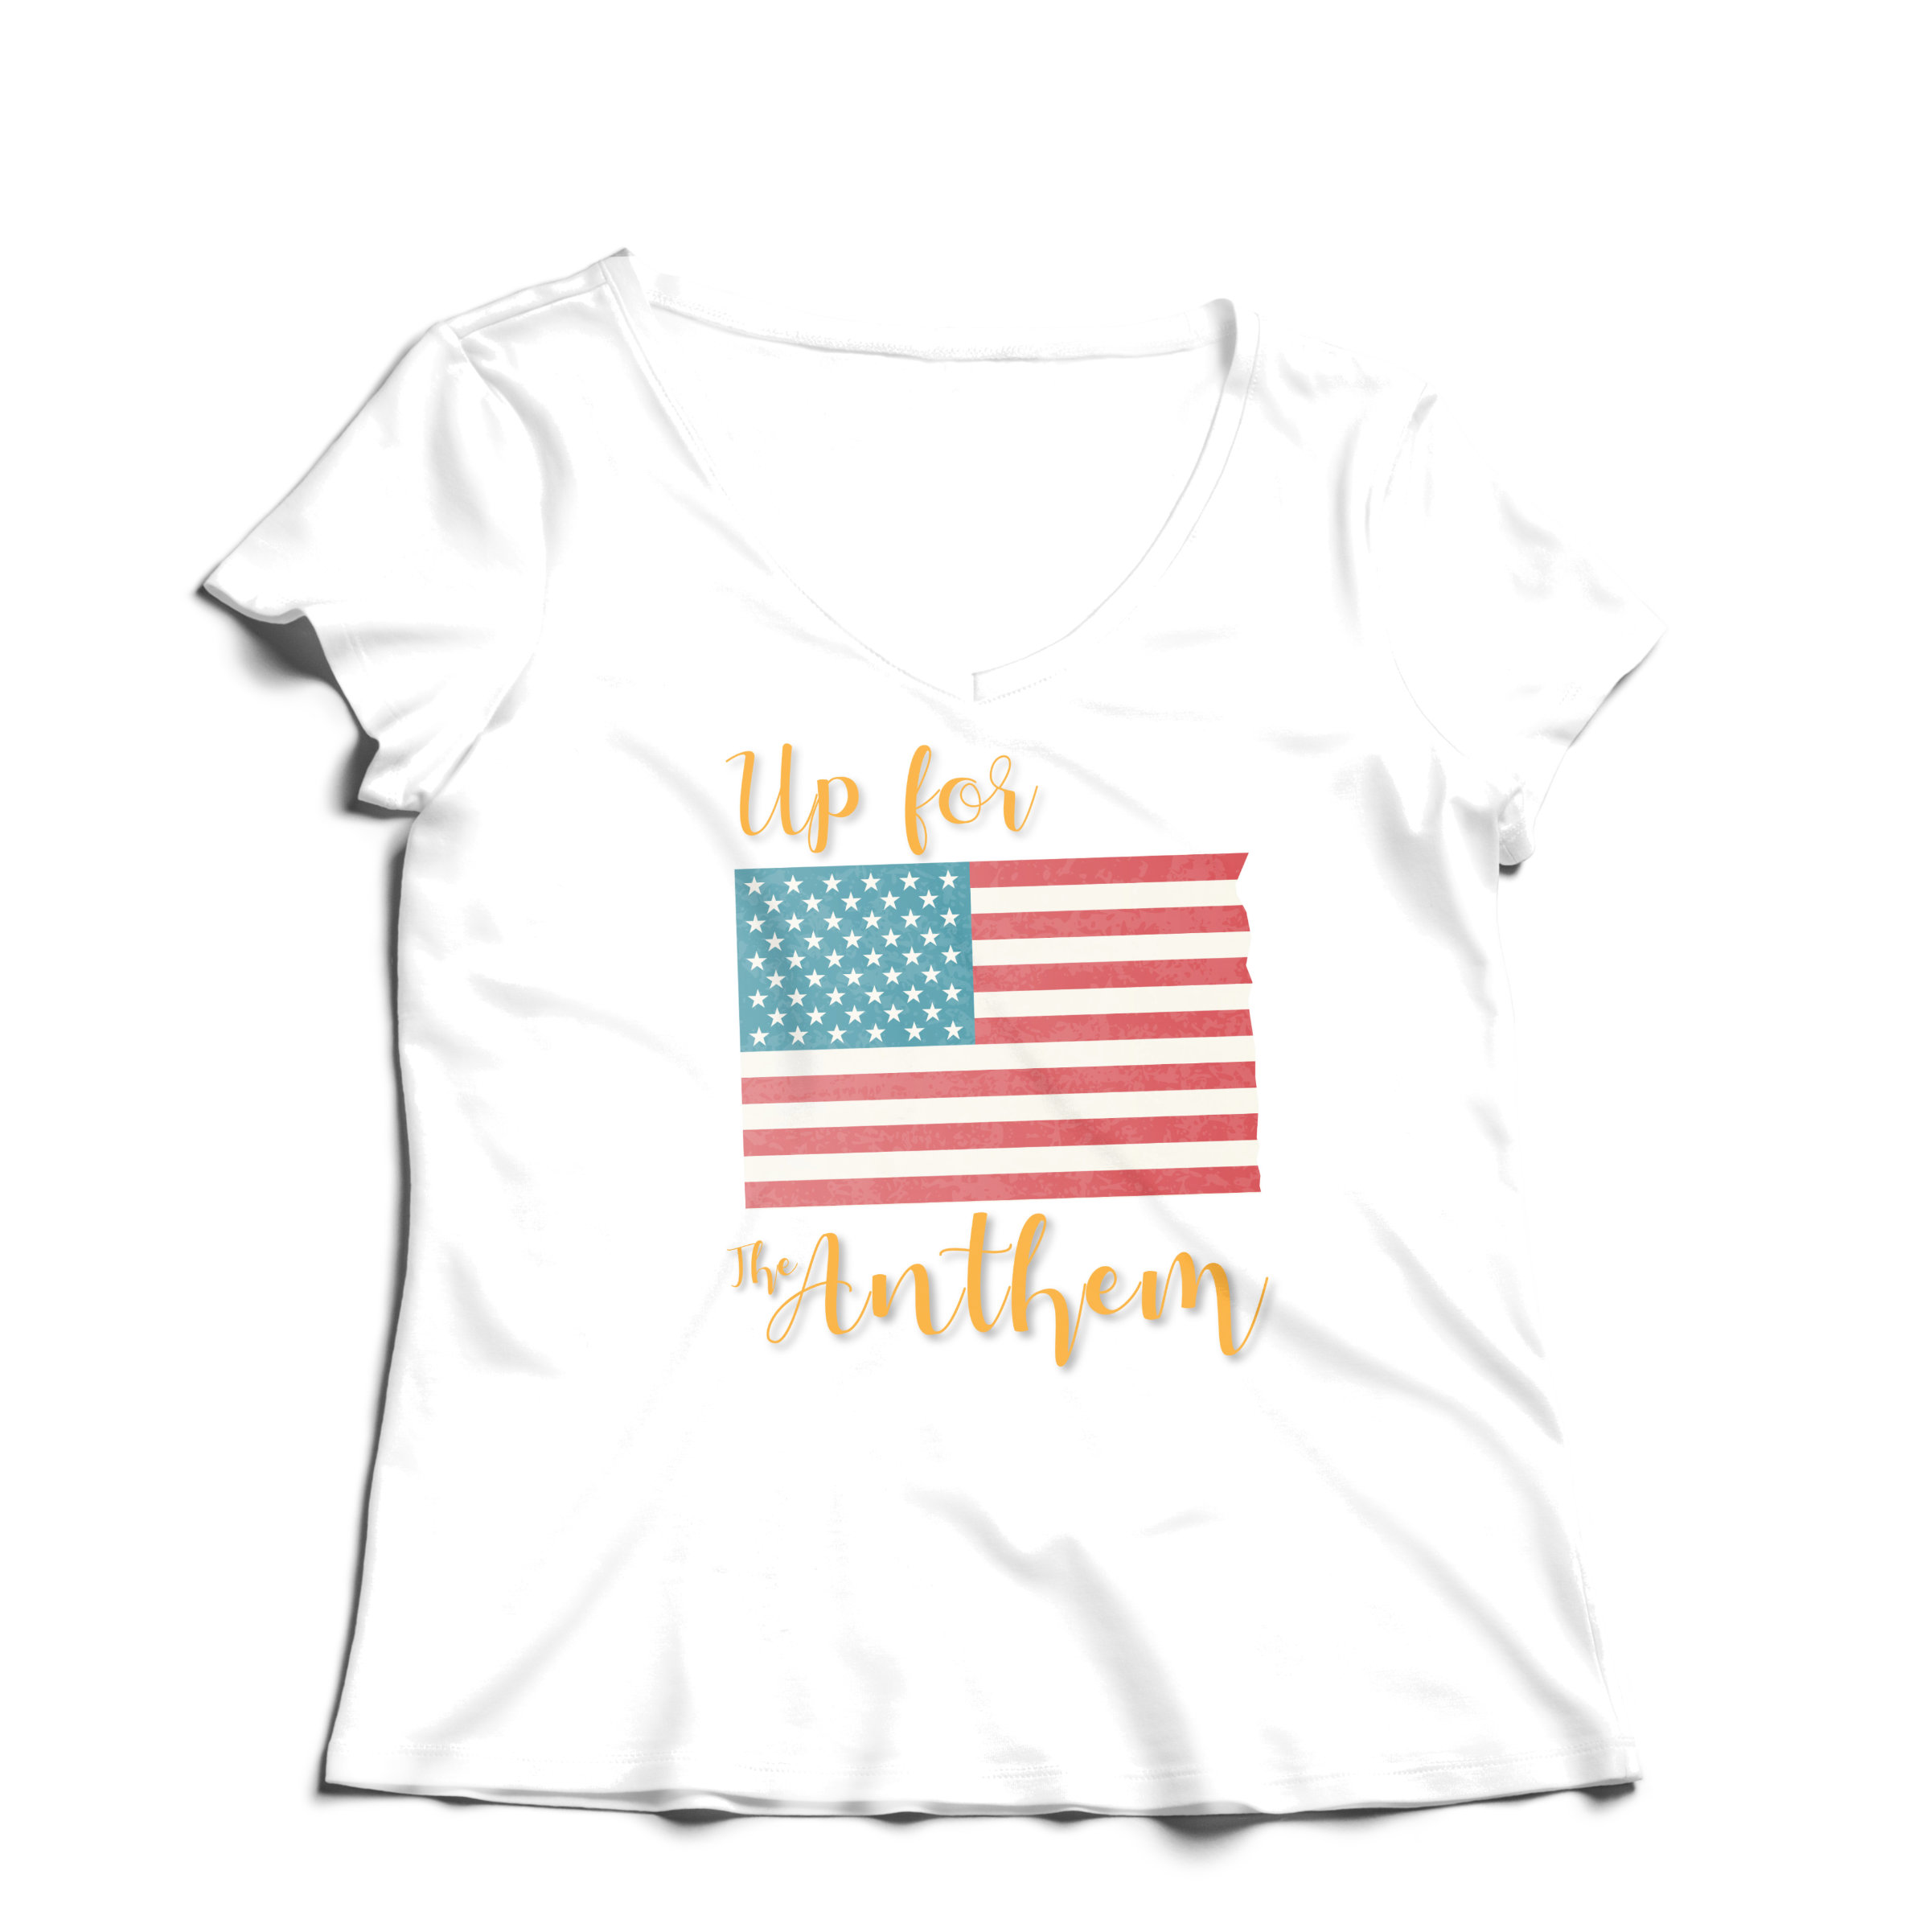 Woman T-Shirt V-Neck Up for the Anthem (1) - White